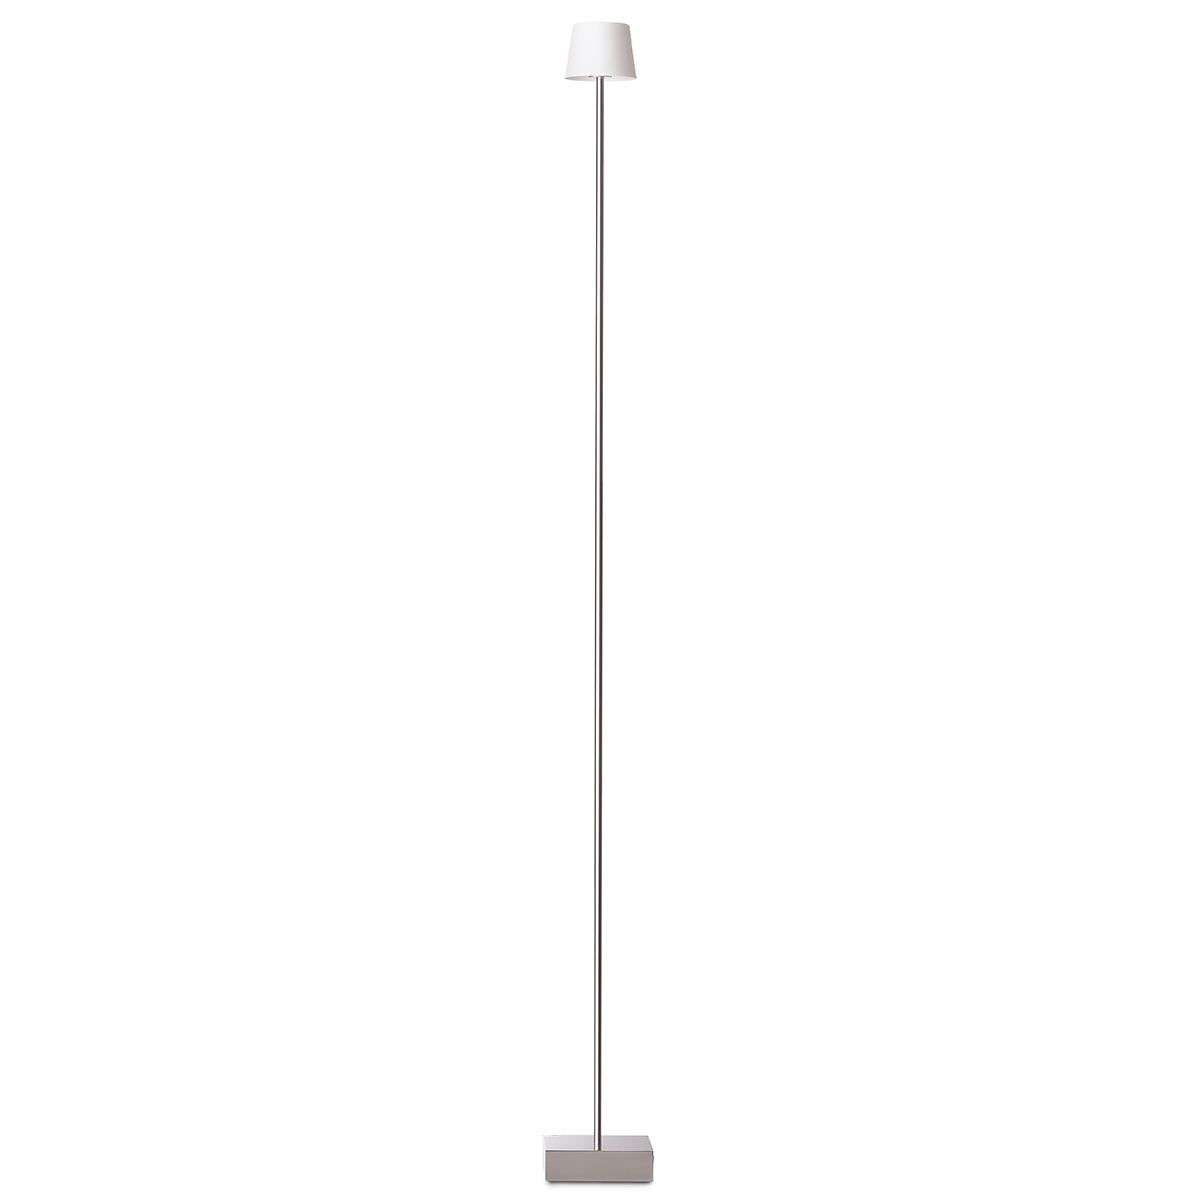 timeless lighting. Timeless Designer Floor Lamp Cut-1071029X-31 Lighting